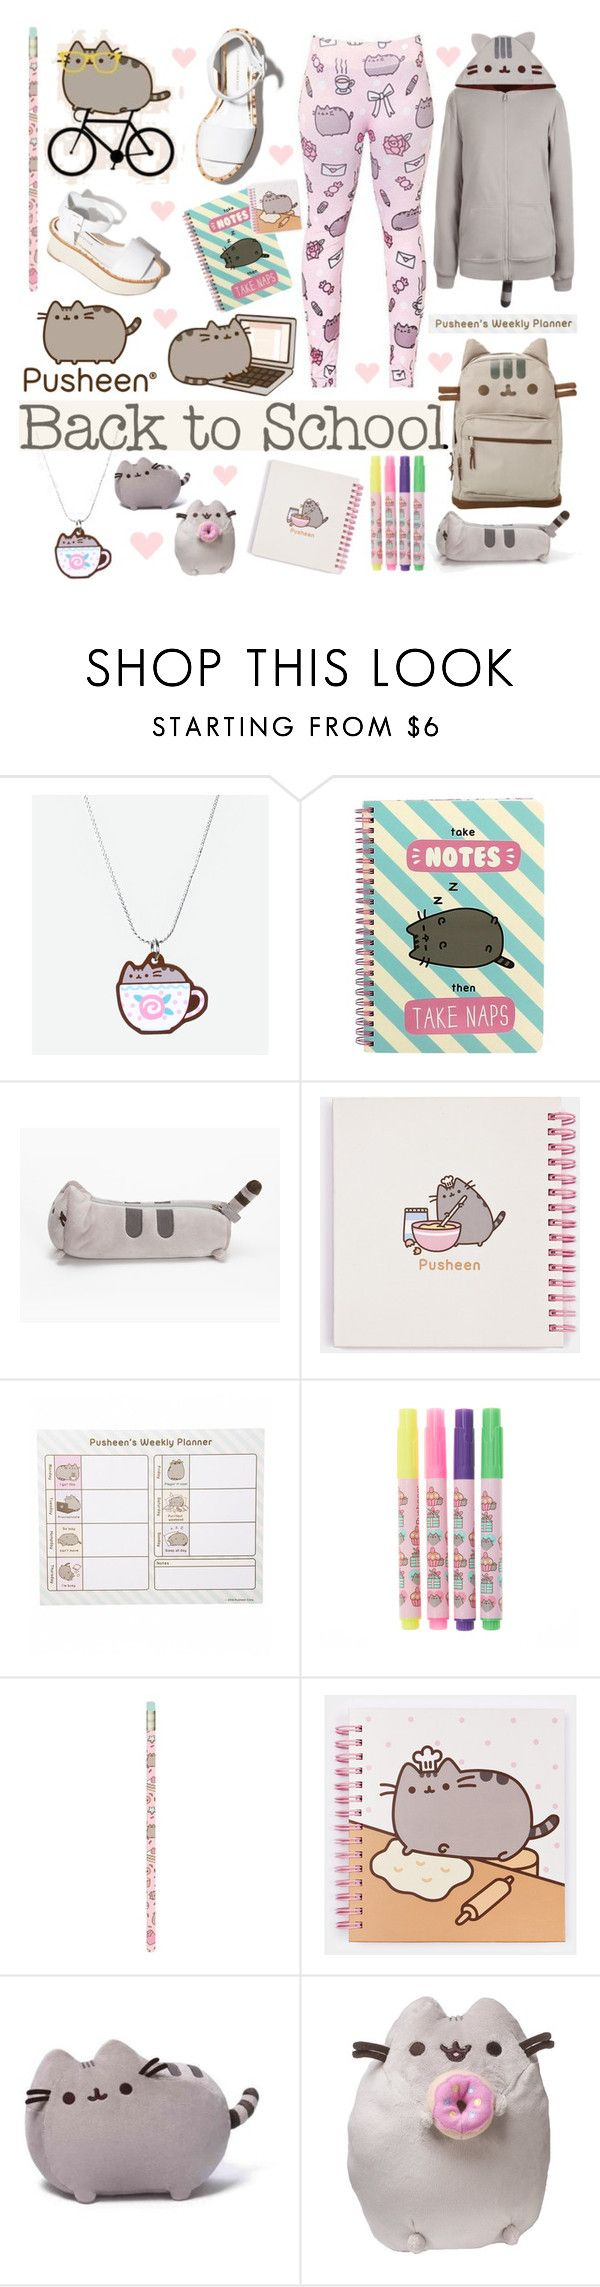 """""""#PVxPusheen Back to School With Pusheen"""" by piedraandjesus ❤ liked on Polyvore featuring Pusheen, Paloma Barceló, Gund, contestentry and PVxPusheen"""